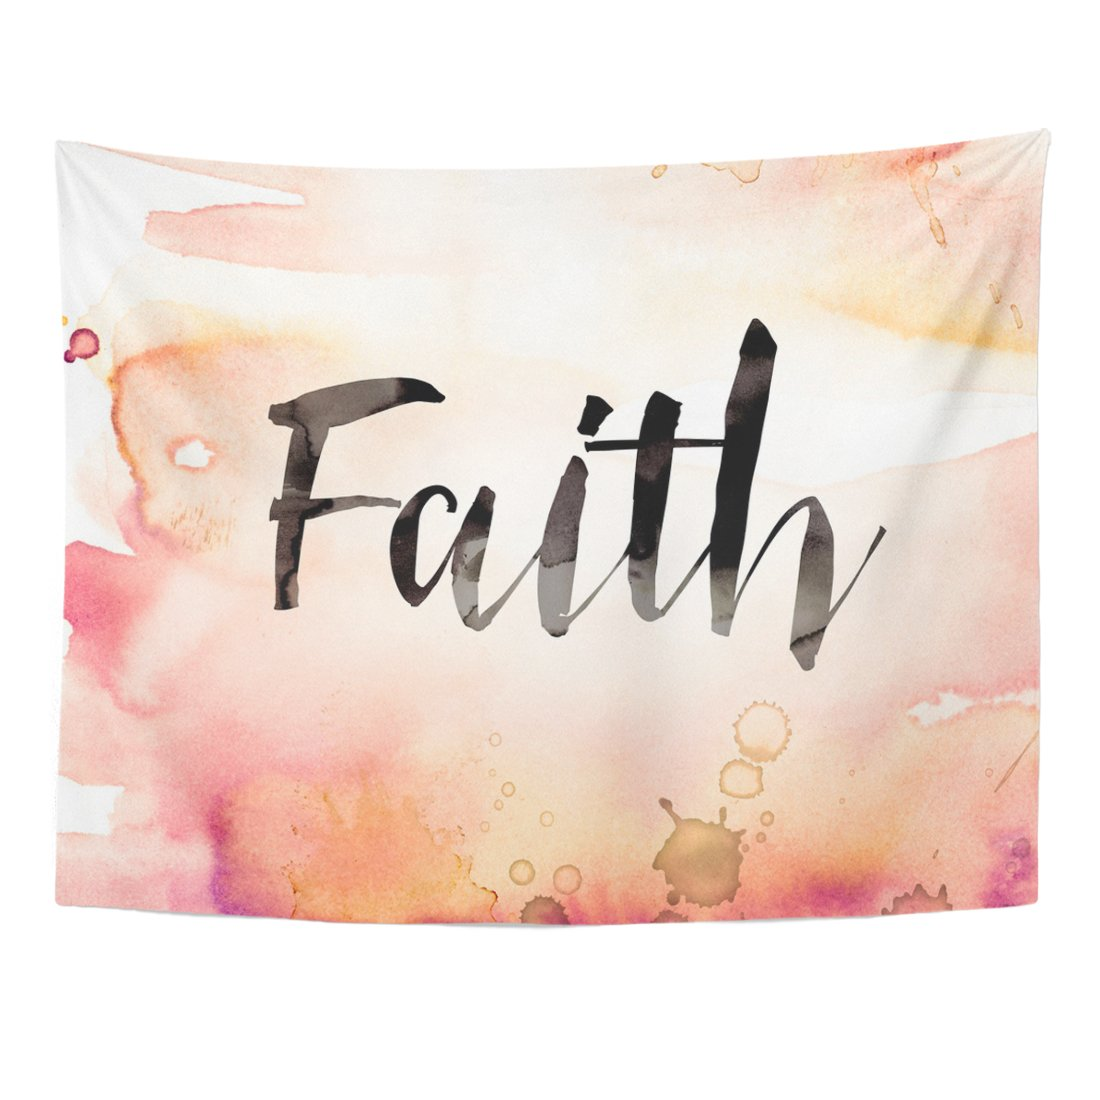 TOMPOP Tapestry Christian the Word Faith Written in Watercolor Washes and Paint Drips God Christ Home Decor Wall Hanging for Living Room Bedroom Dorm 60x80 Inches